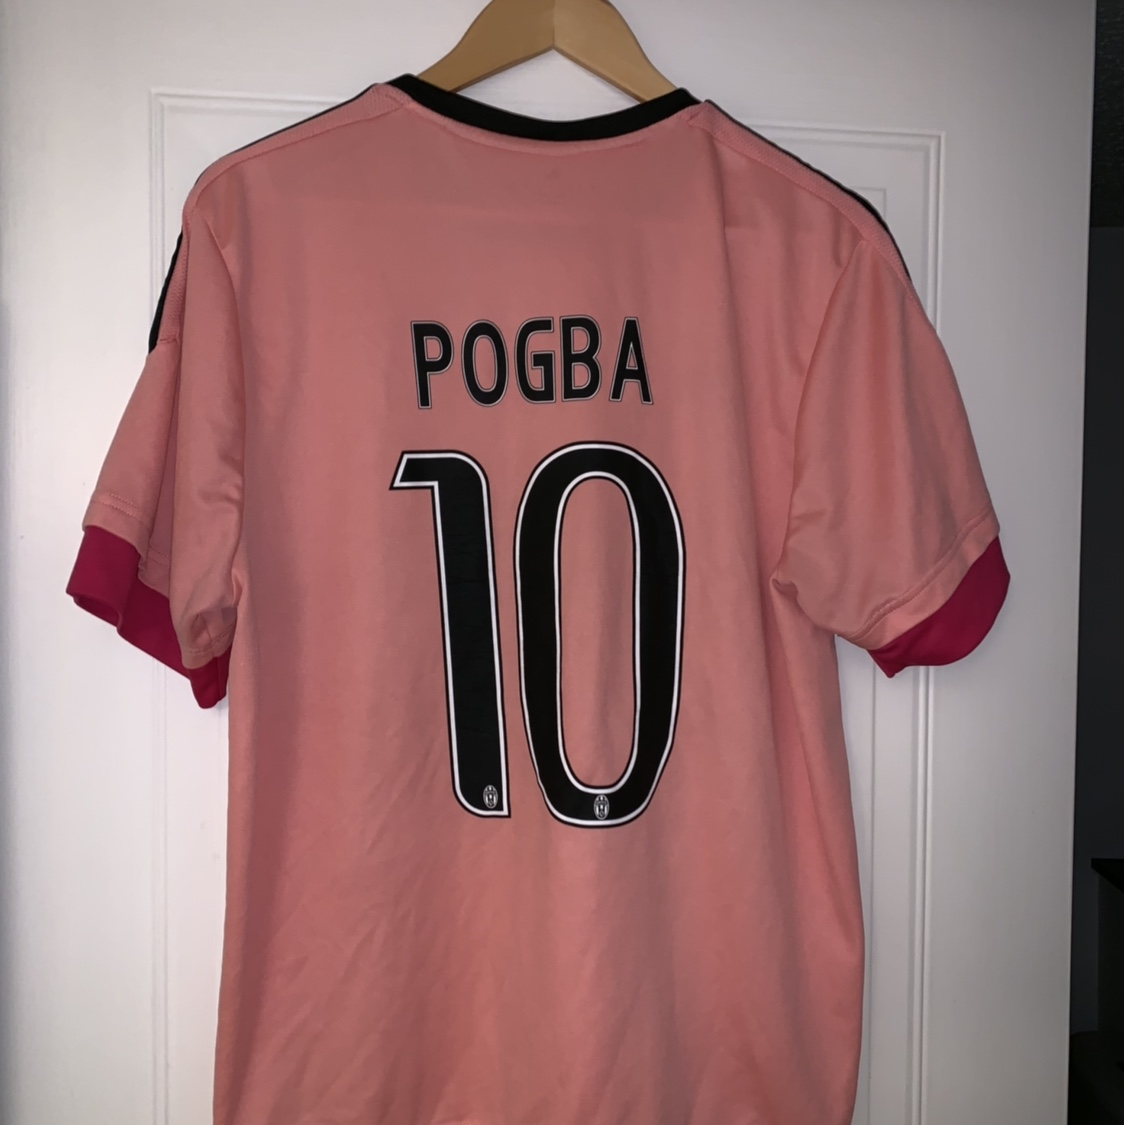 competitive price 3aaf3 d1e7f Pink Pogba Juventus shirt. Only one I can see on the... - Depop